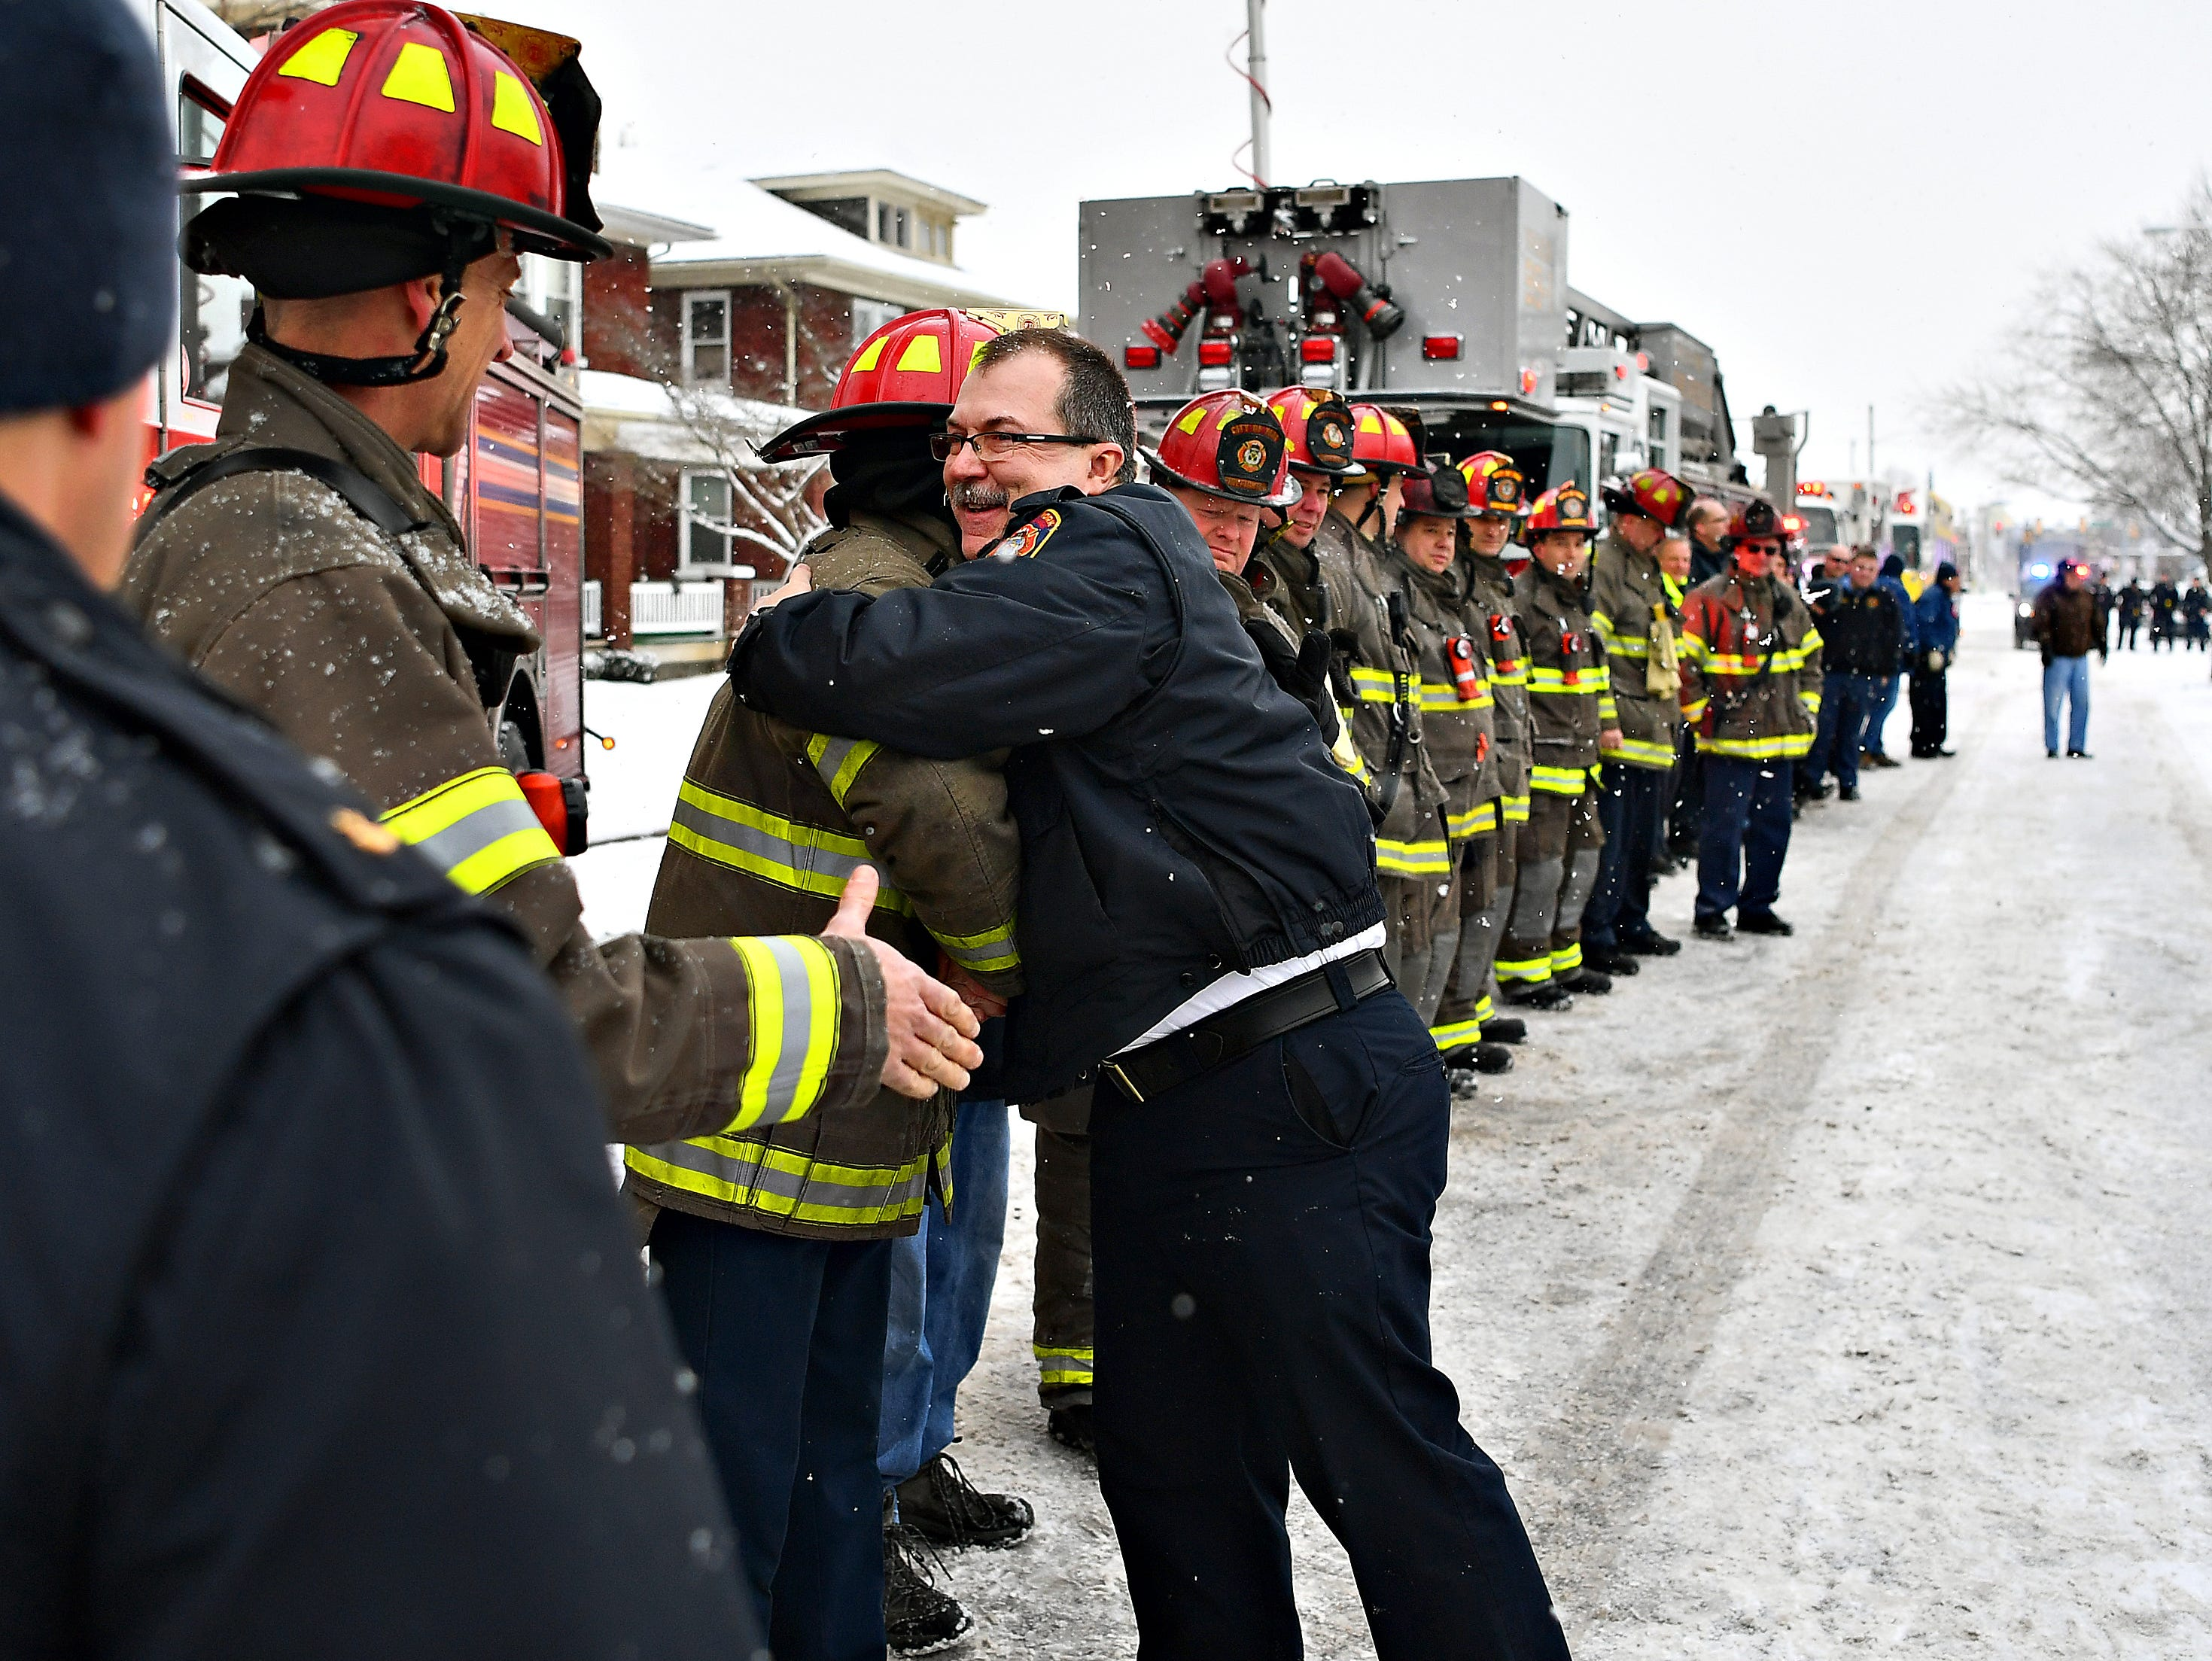 Newly retired York City Fire Chief David Michaels greets area firefighters with a handshake and a hug as family, friends and community members gather to honor him at his home following his final shift in York City, Friday, Feb. 1, 2019. Michaels has been chief since 2012, and has been with York City Department of Fire & Rescue for 28 years. Dawn J. Sagert photo